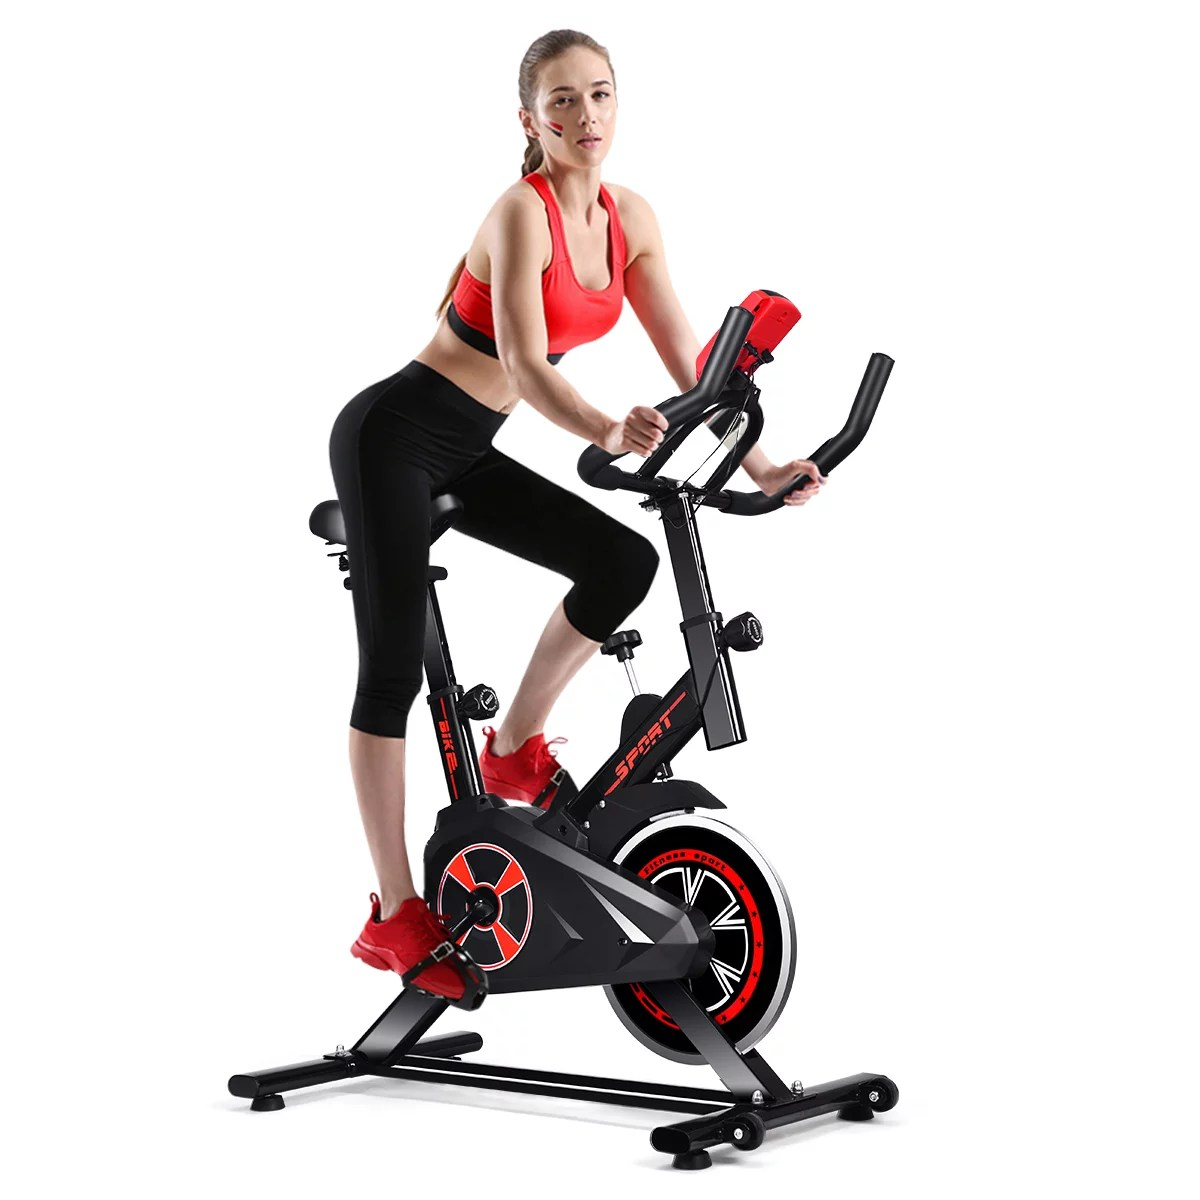 Costway Indoor Cycling Exercise Bike Gym Trainer Fitness Stationary Bike Office Cardio Walmart Canada